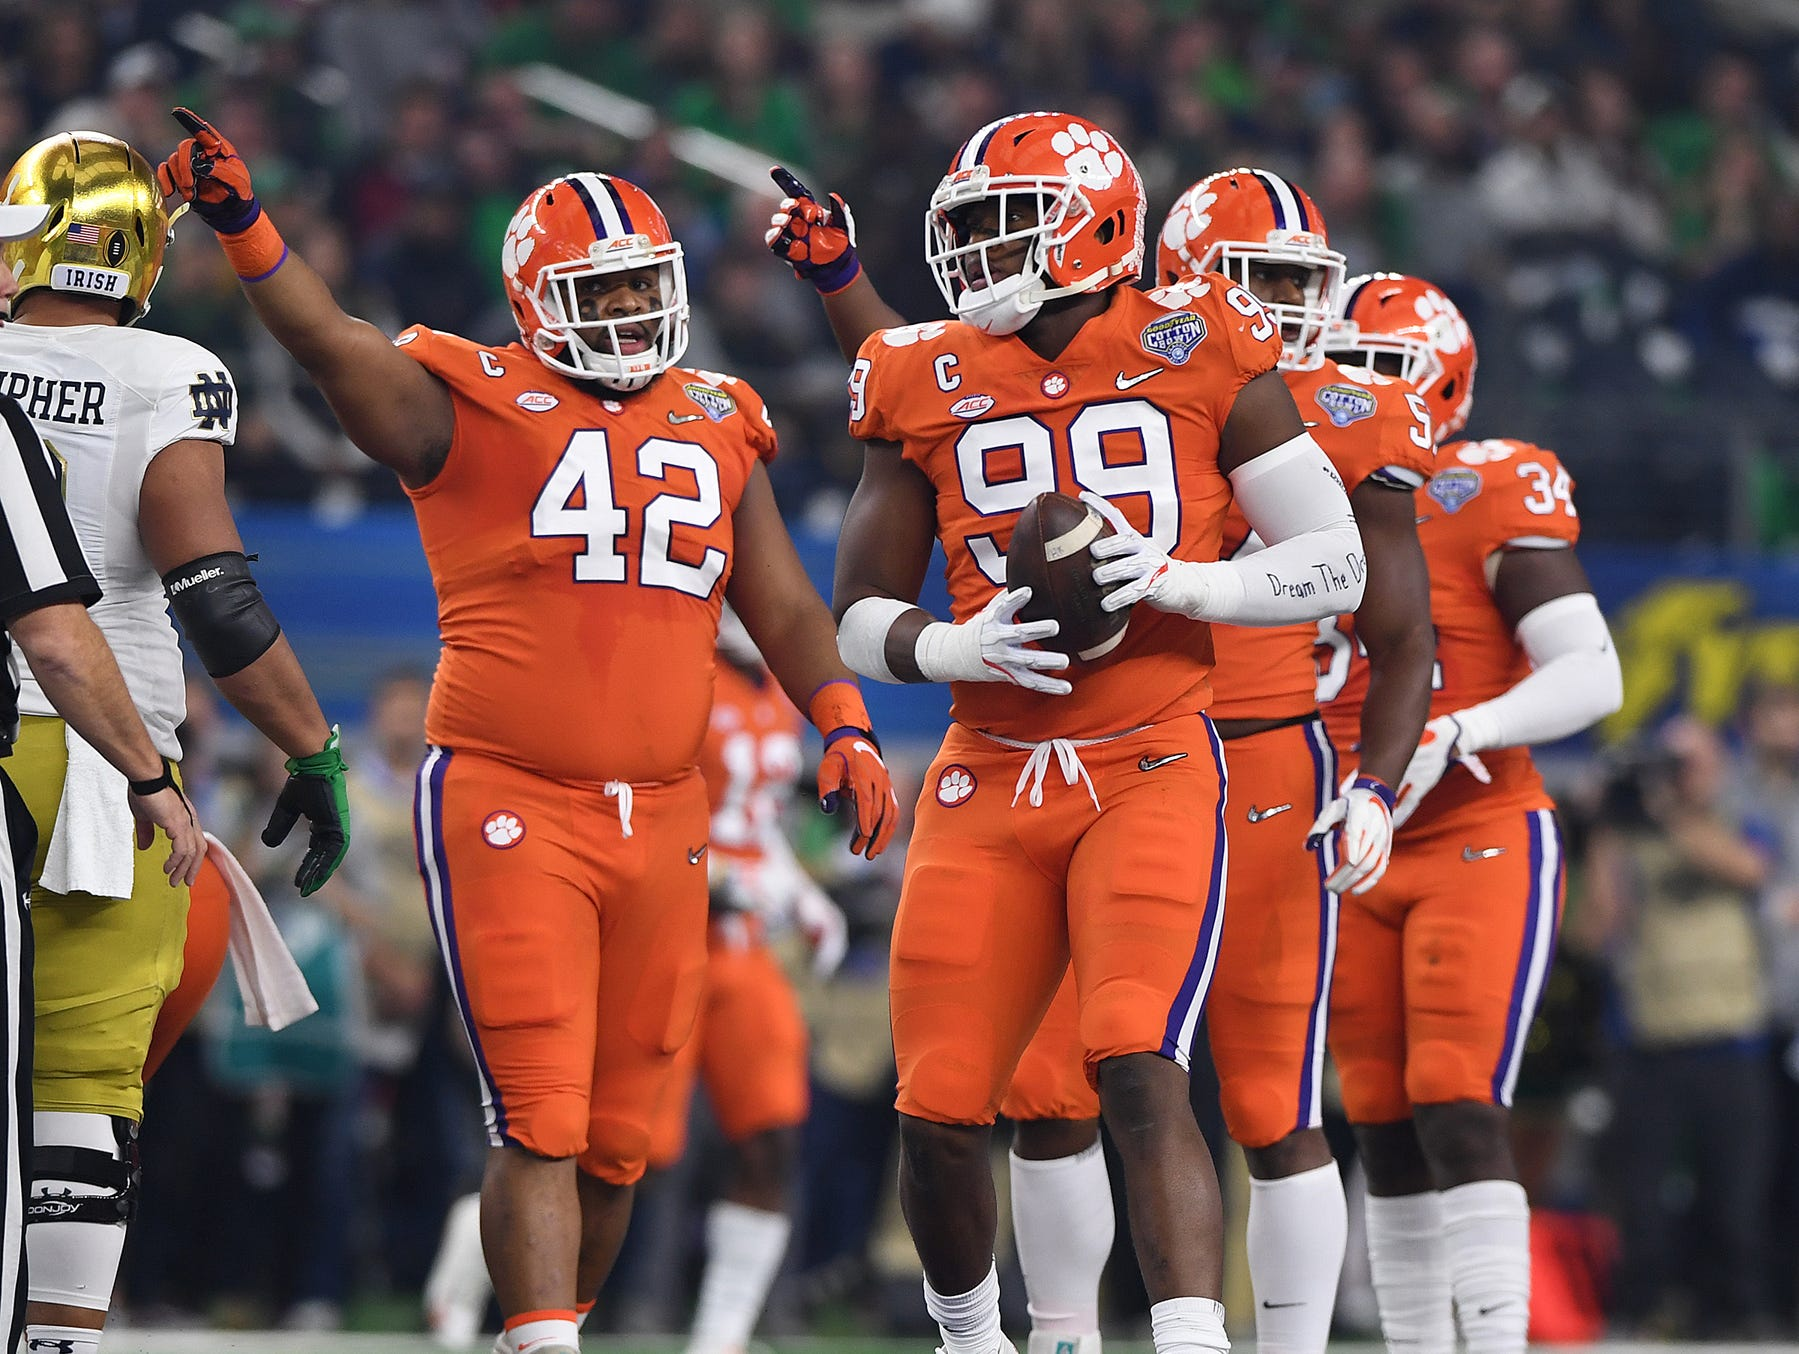 Clemson defensive lineman Clelin Ferrell (99) recovers a fumble by Notre Dame quarterback Ian Book (12) during the 1st quarter of the Goodyear Cotton Bowl at AT&T stadium in Arlington, TX Saturday, December 29, 2018.